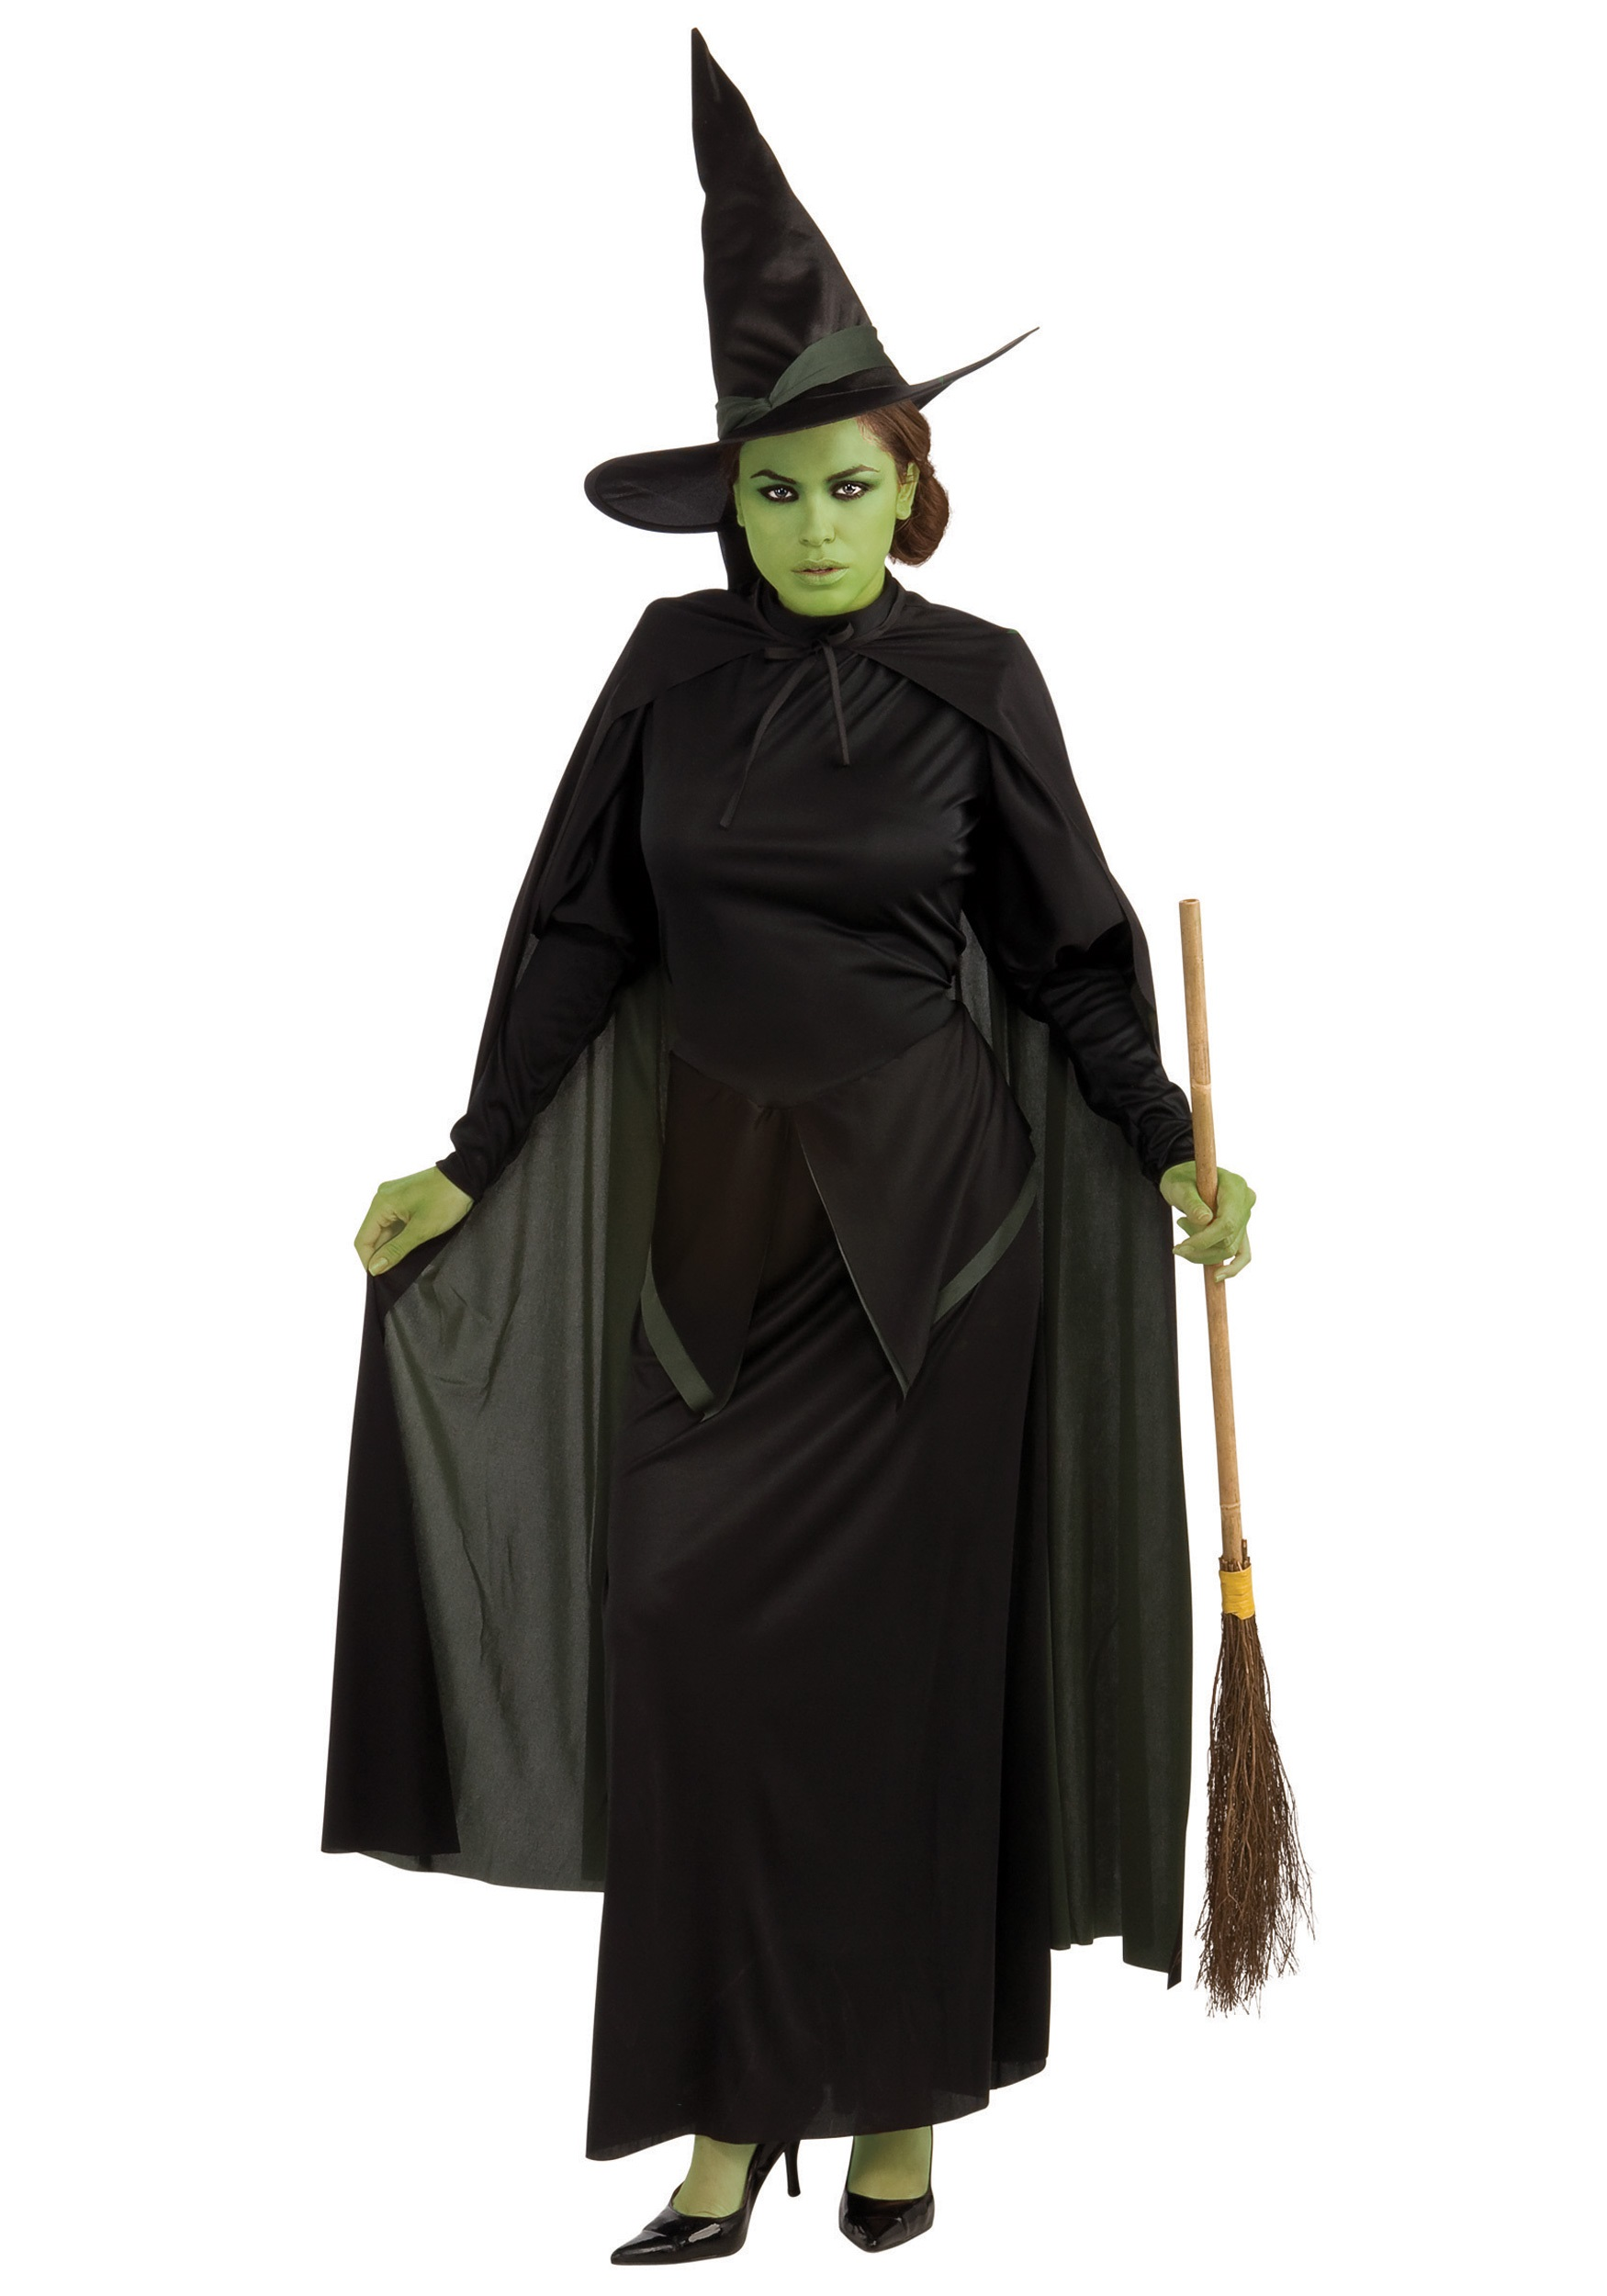 ... kids witch costumewicked · wicked witch costume ...  sc 1 st  Best Kids Costumes & Wicked Witch Of The West Kids Costume - Best Kids Costumes